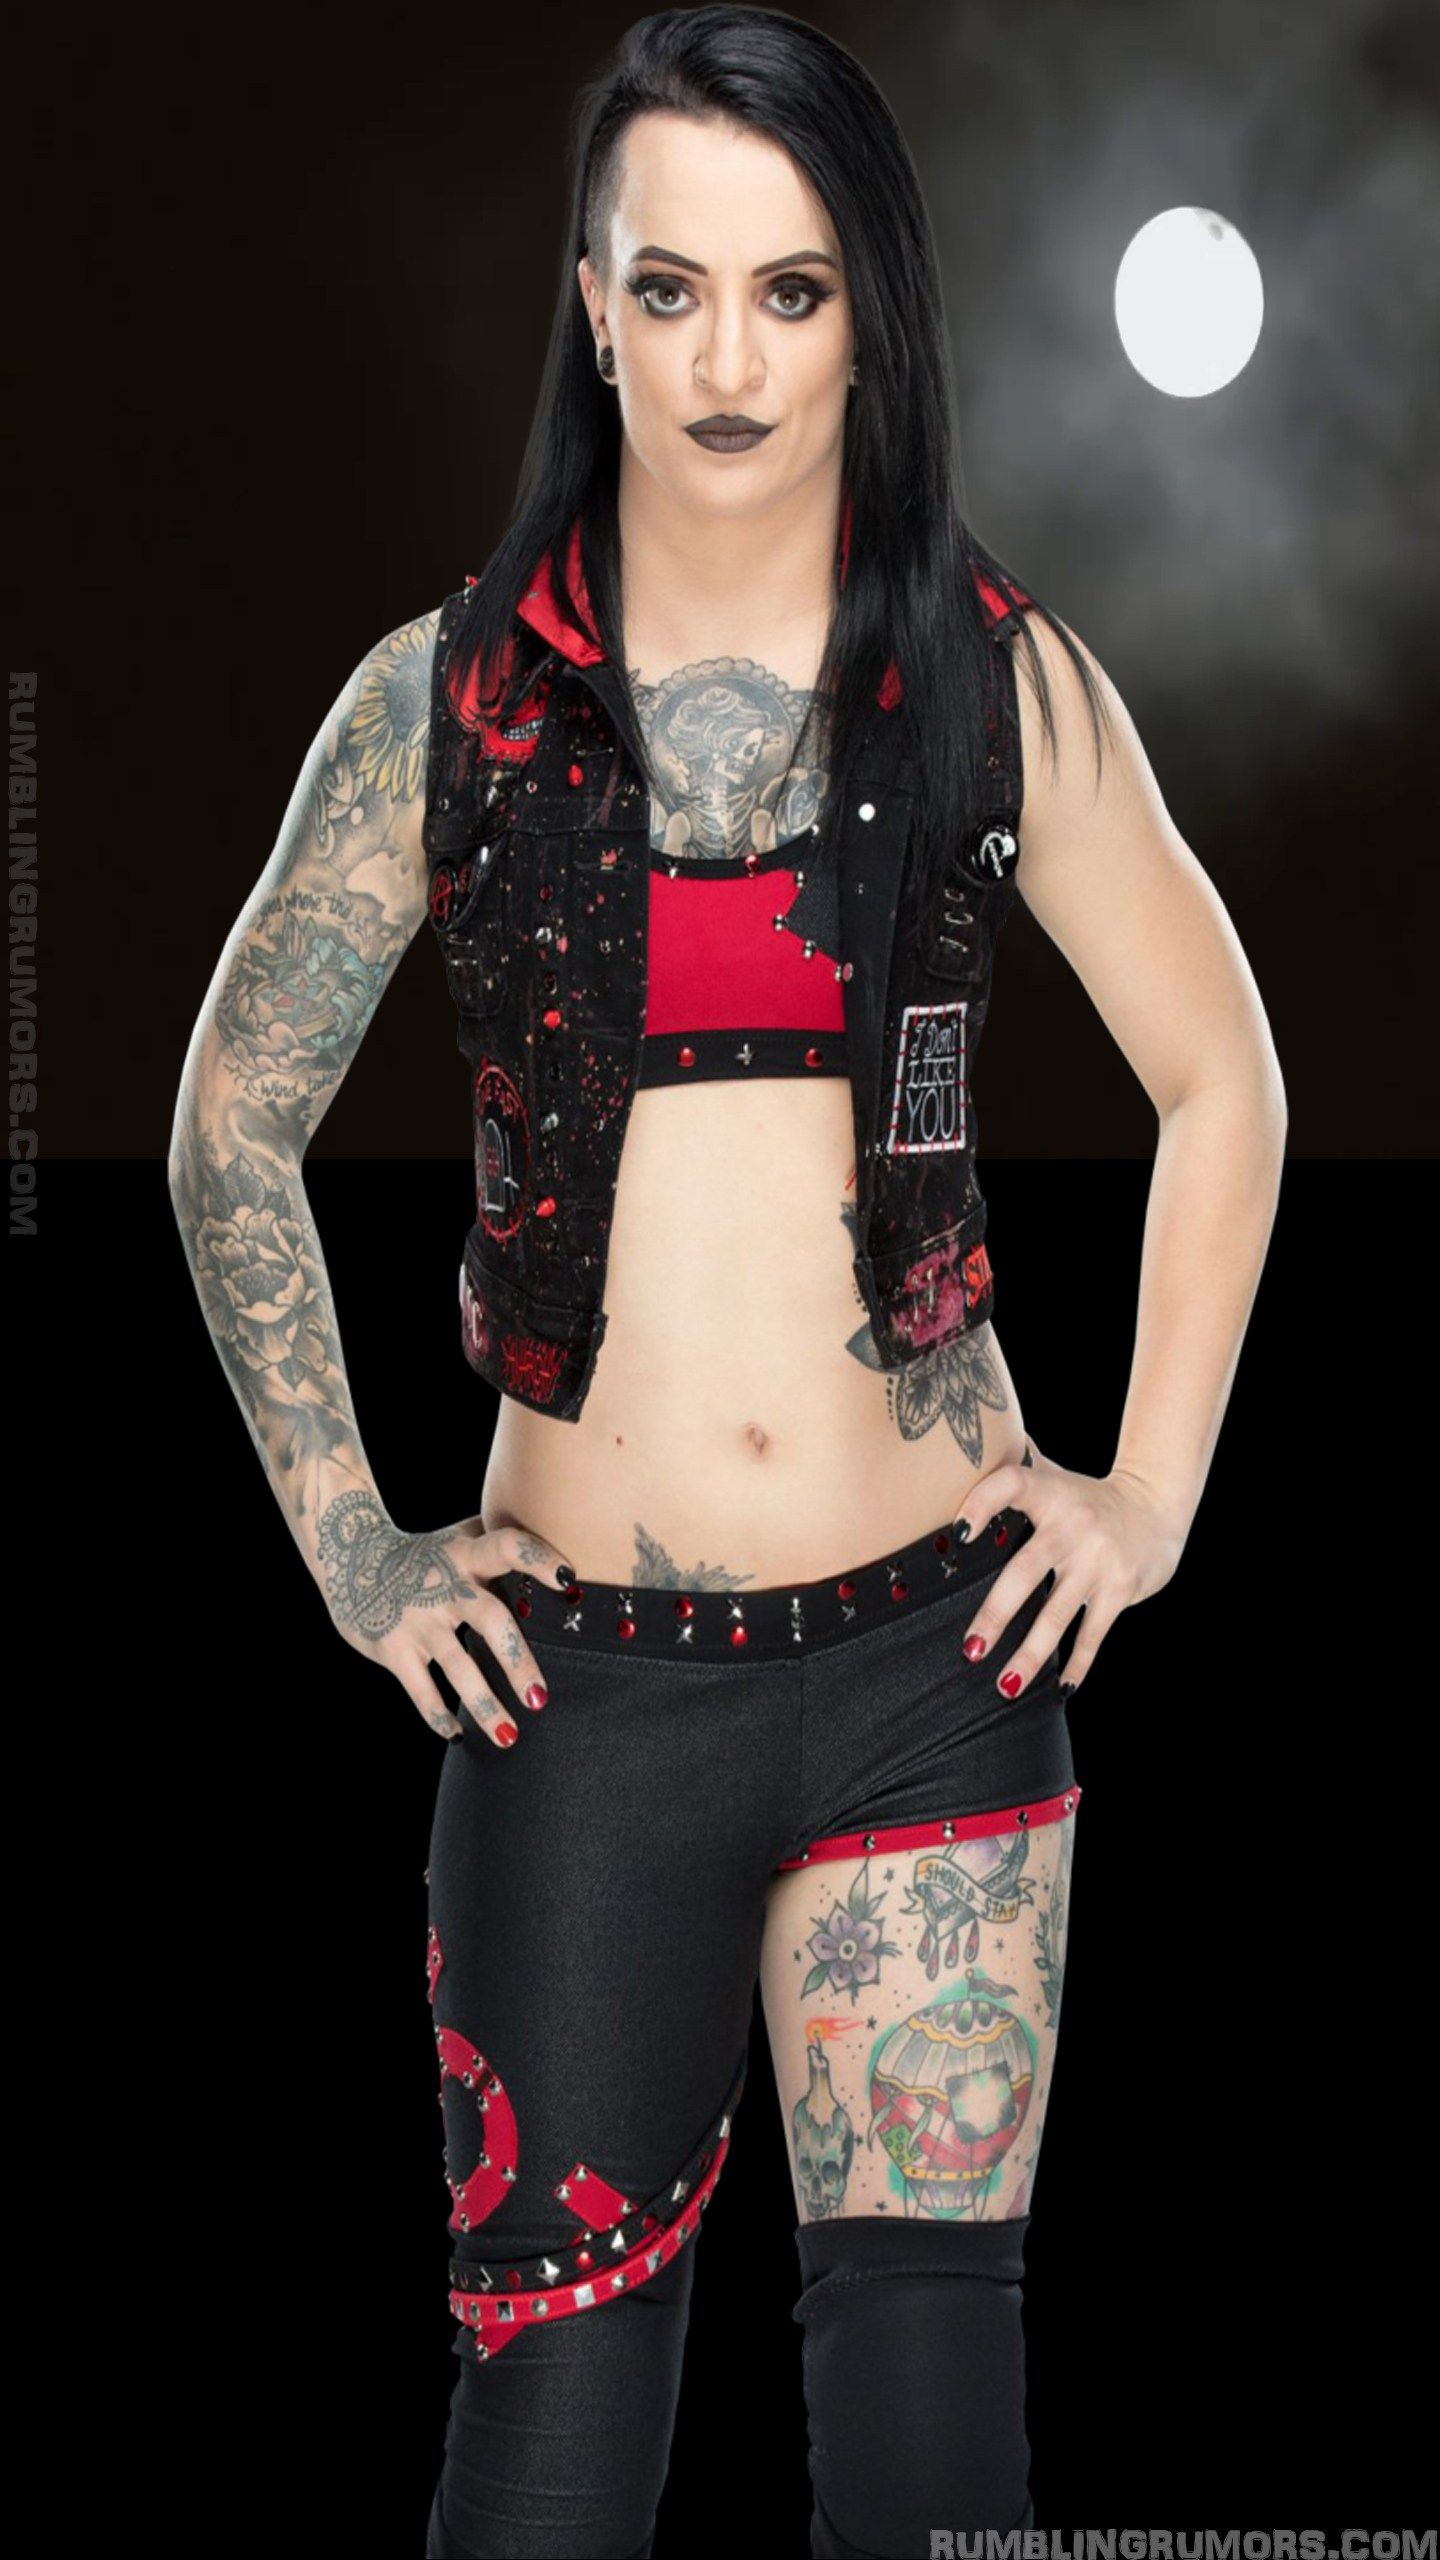 Ruby Riott HD Mobile Wallpaper! - Page 2 of 2 - RumblingRumors | Wwe  womens, Nxt divas, Wwe female wrestlers